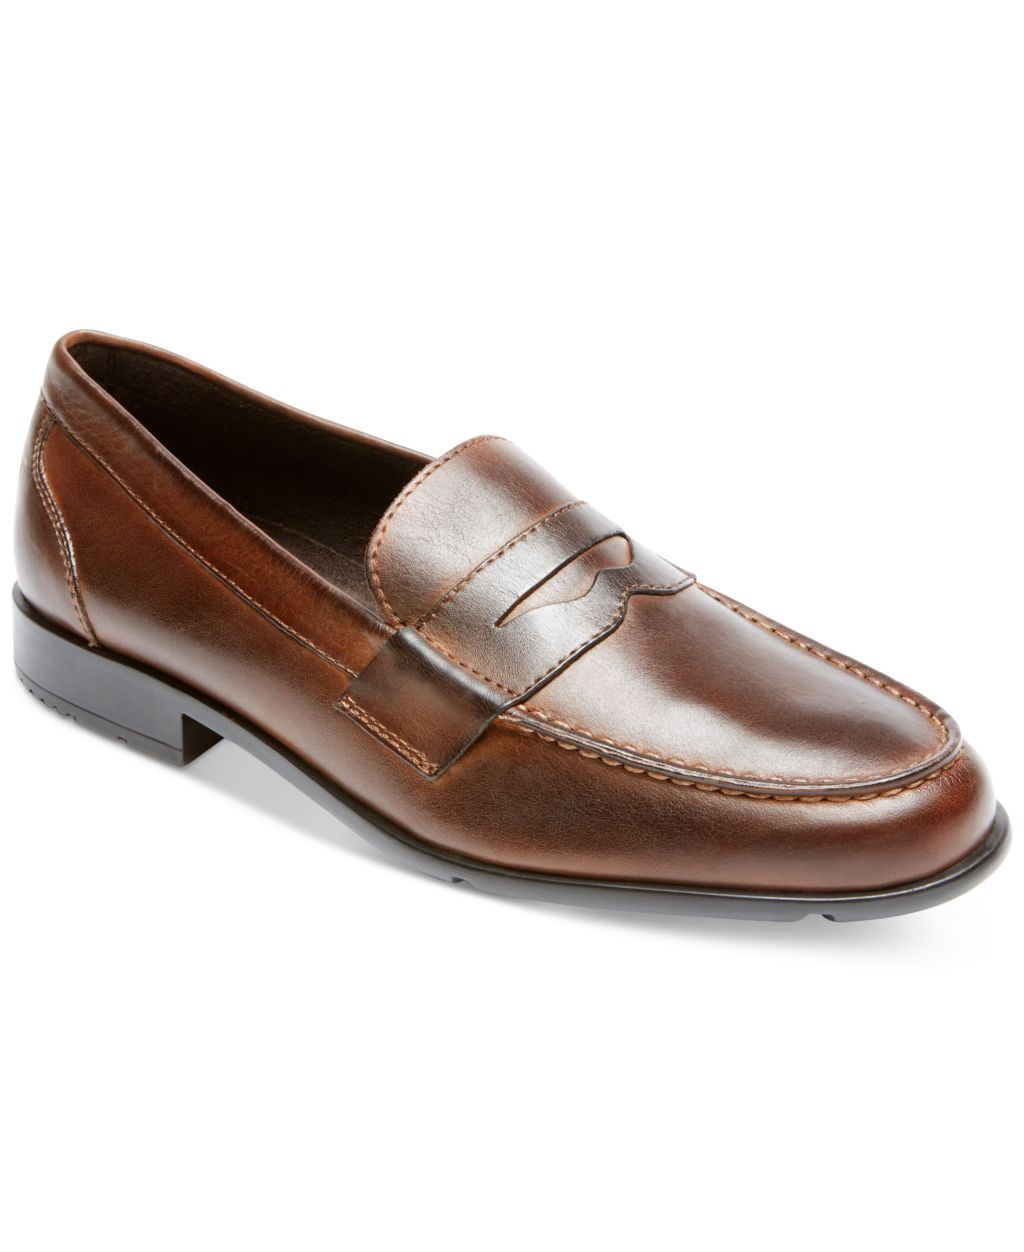 Rockport Leather Upper Men's Classic Penny Loafers